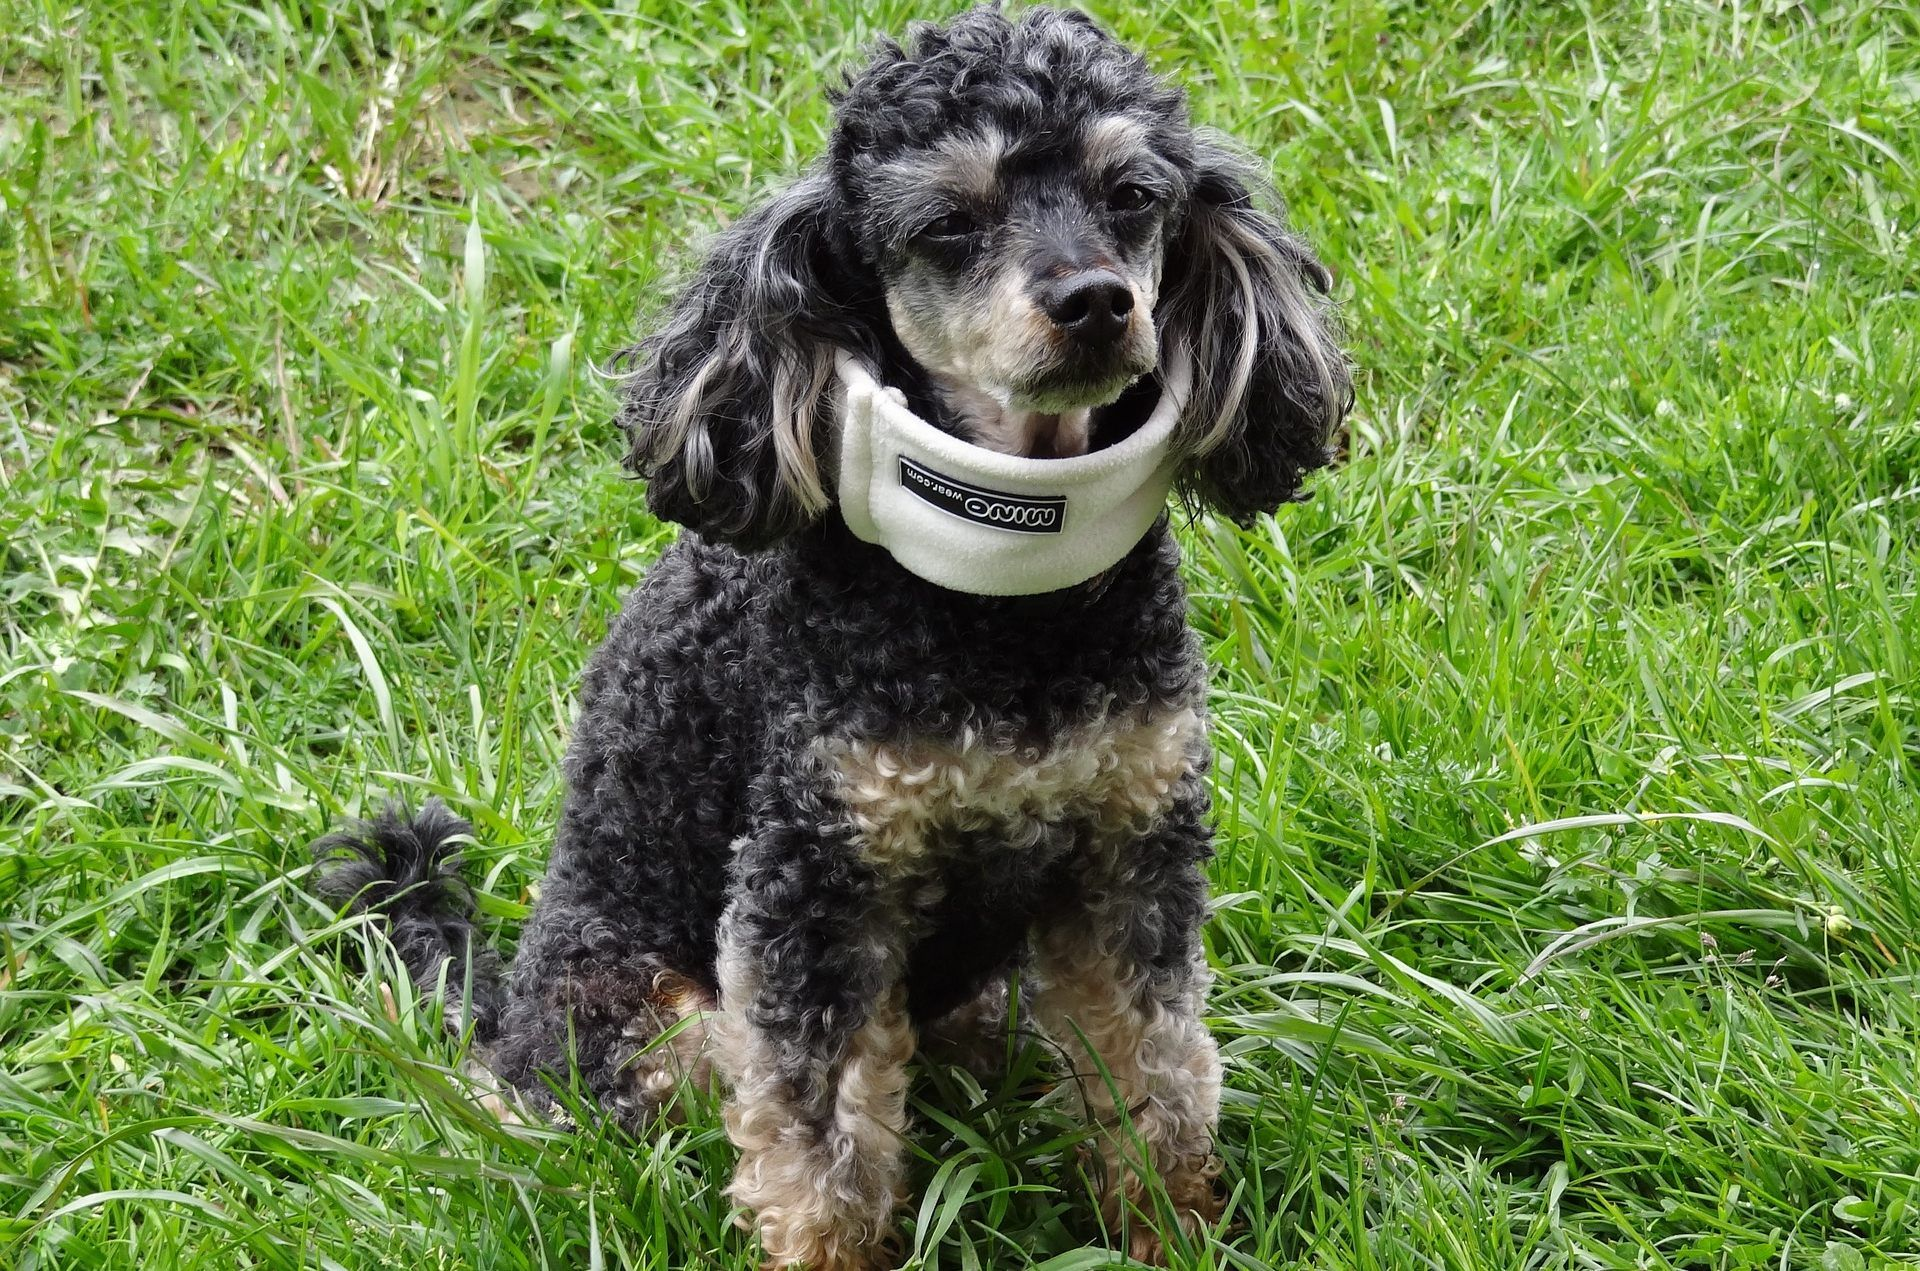 Tips for helping your dog recover from injury, illness or